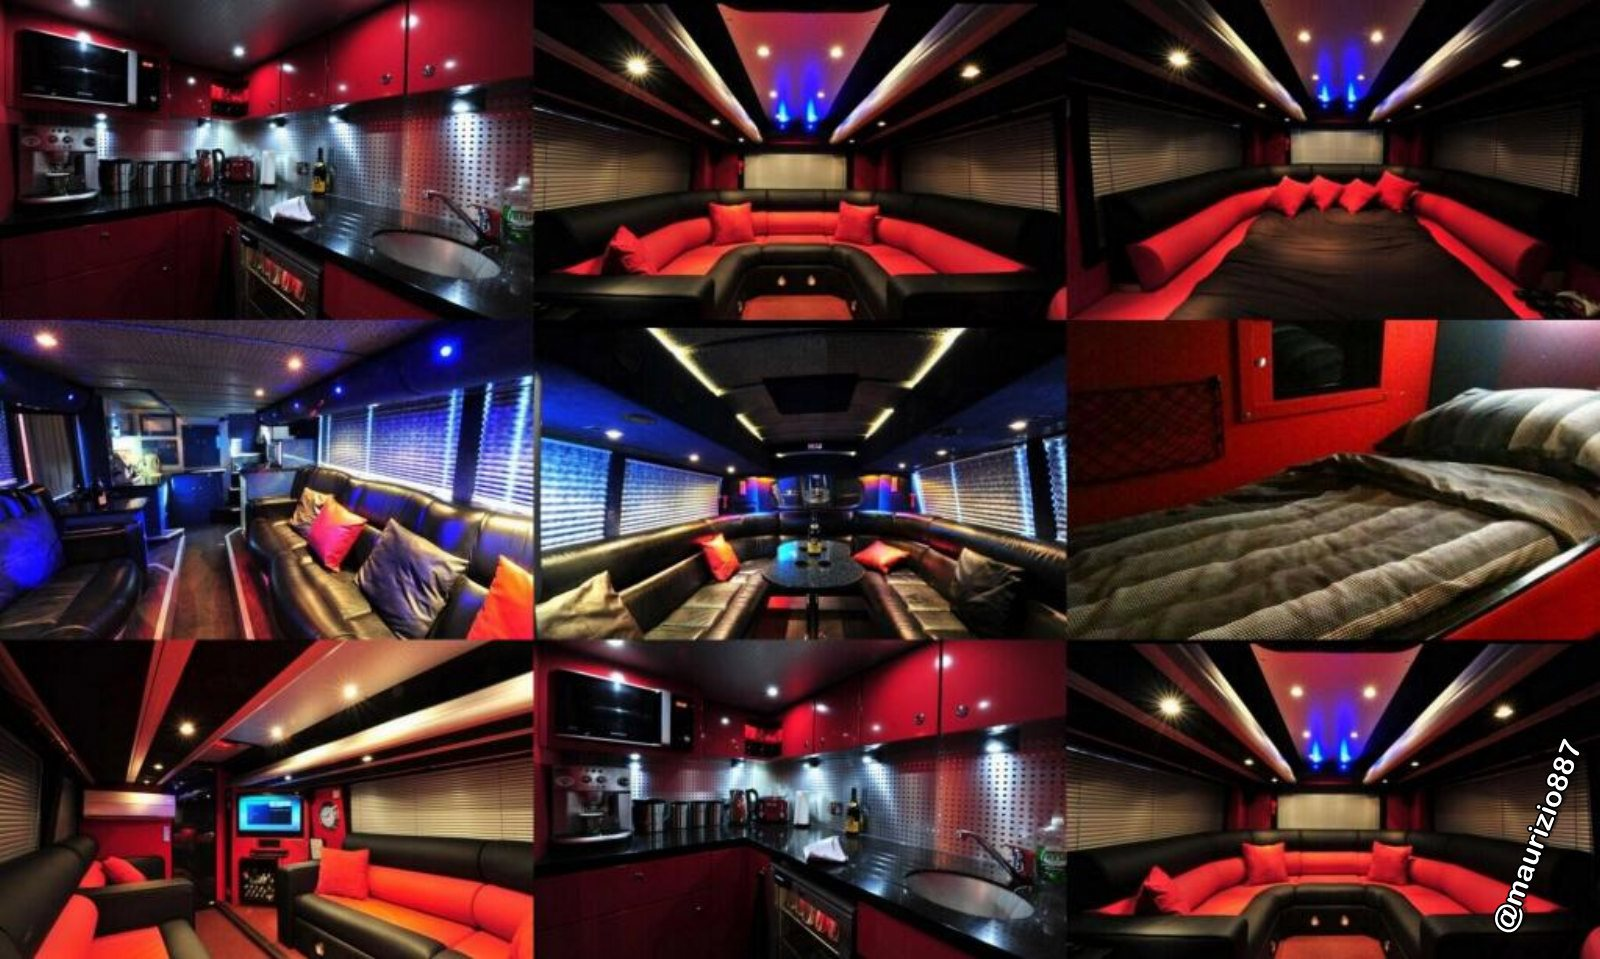 One direction tour bus interior - One Direction Tour Bus Interior 1